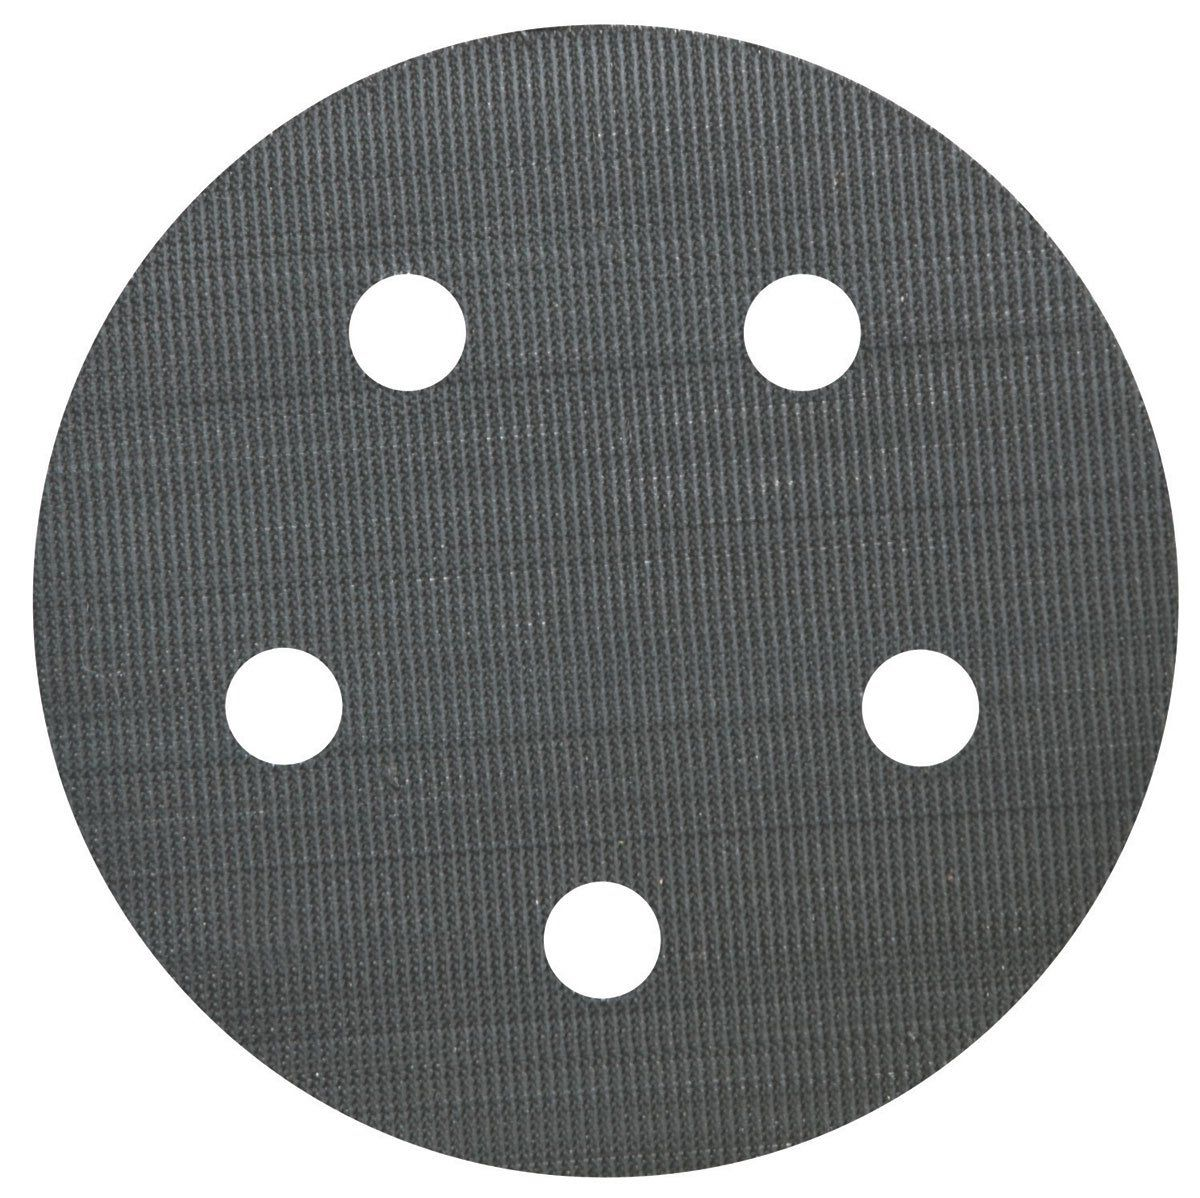 Porter Cable 13905 5 Inch Contour Hook And Loop Replacement Pad For 333 Random Orbit Sander Inch Porter Cable Best Random Orbital Sander Sanders